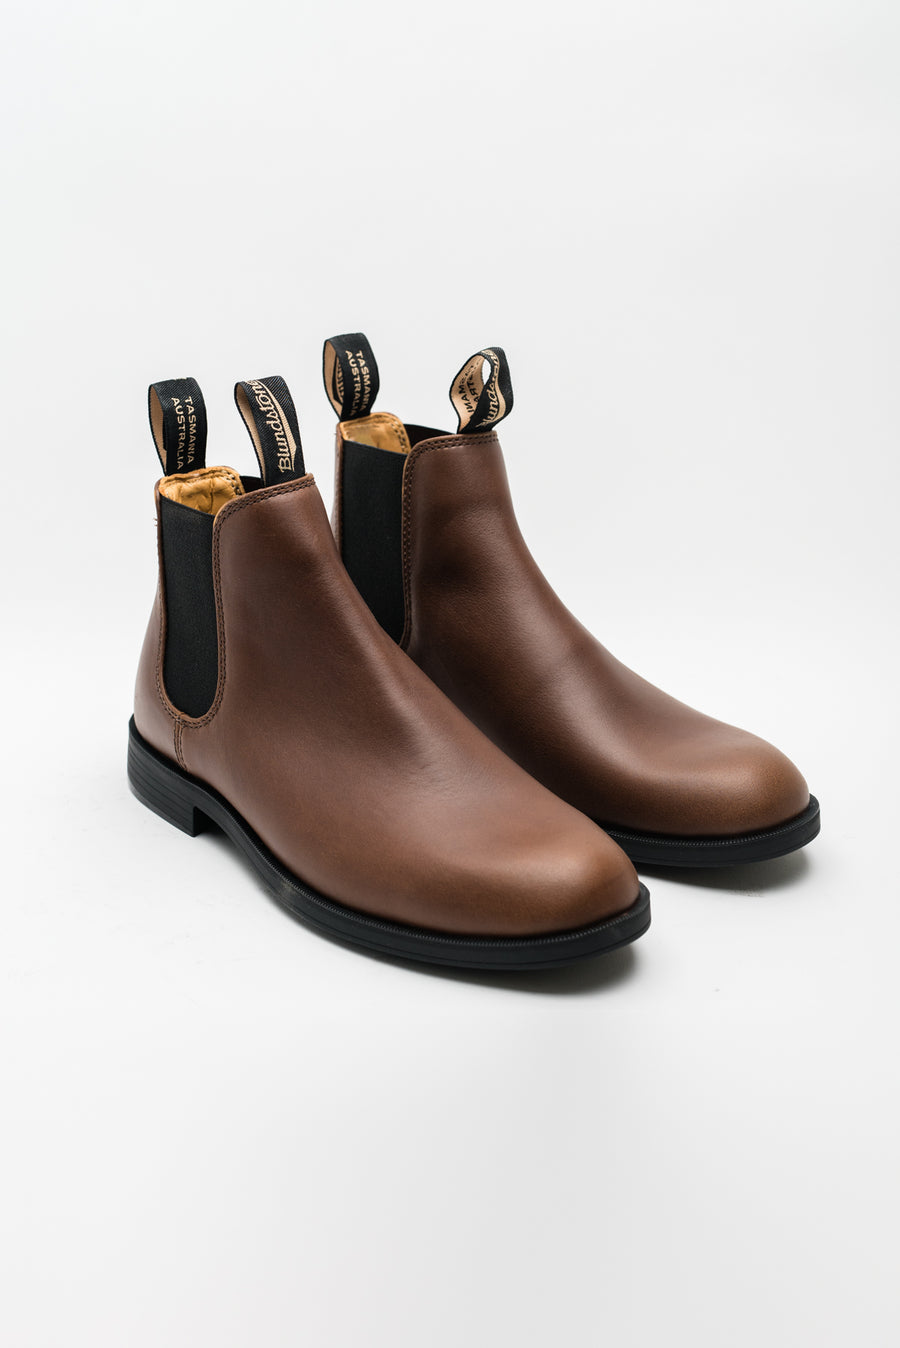 Men's 1902 Tan Ankle Dress Boot